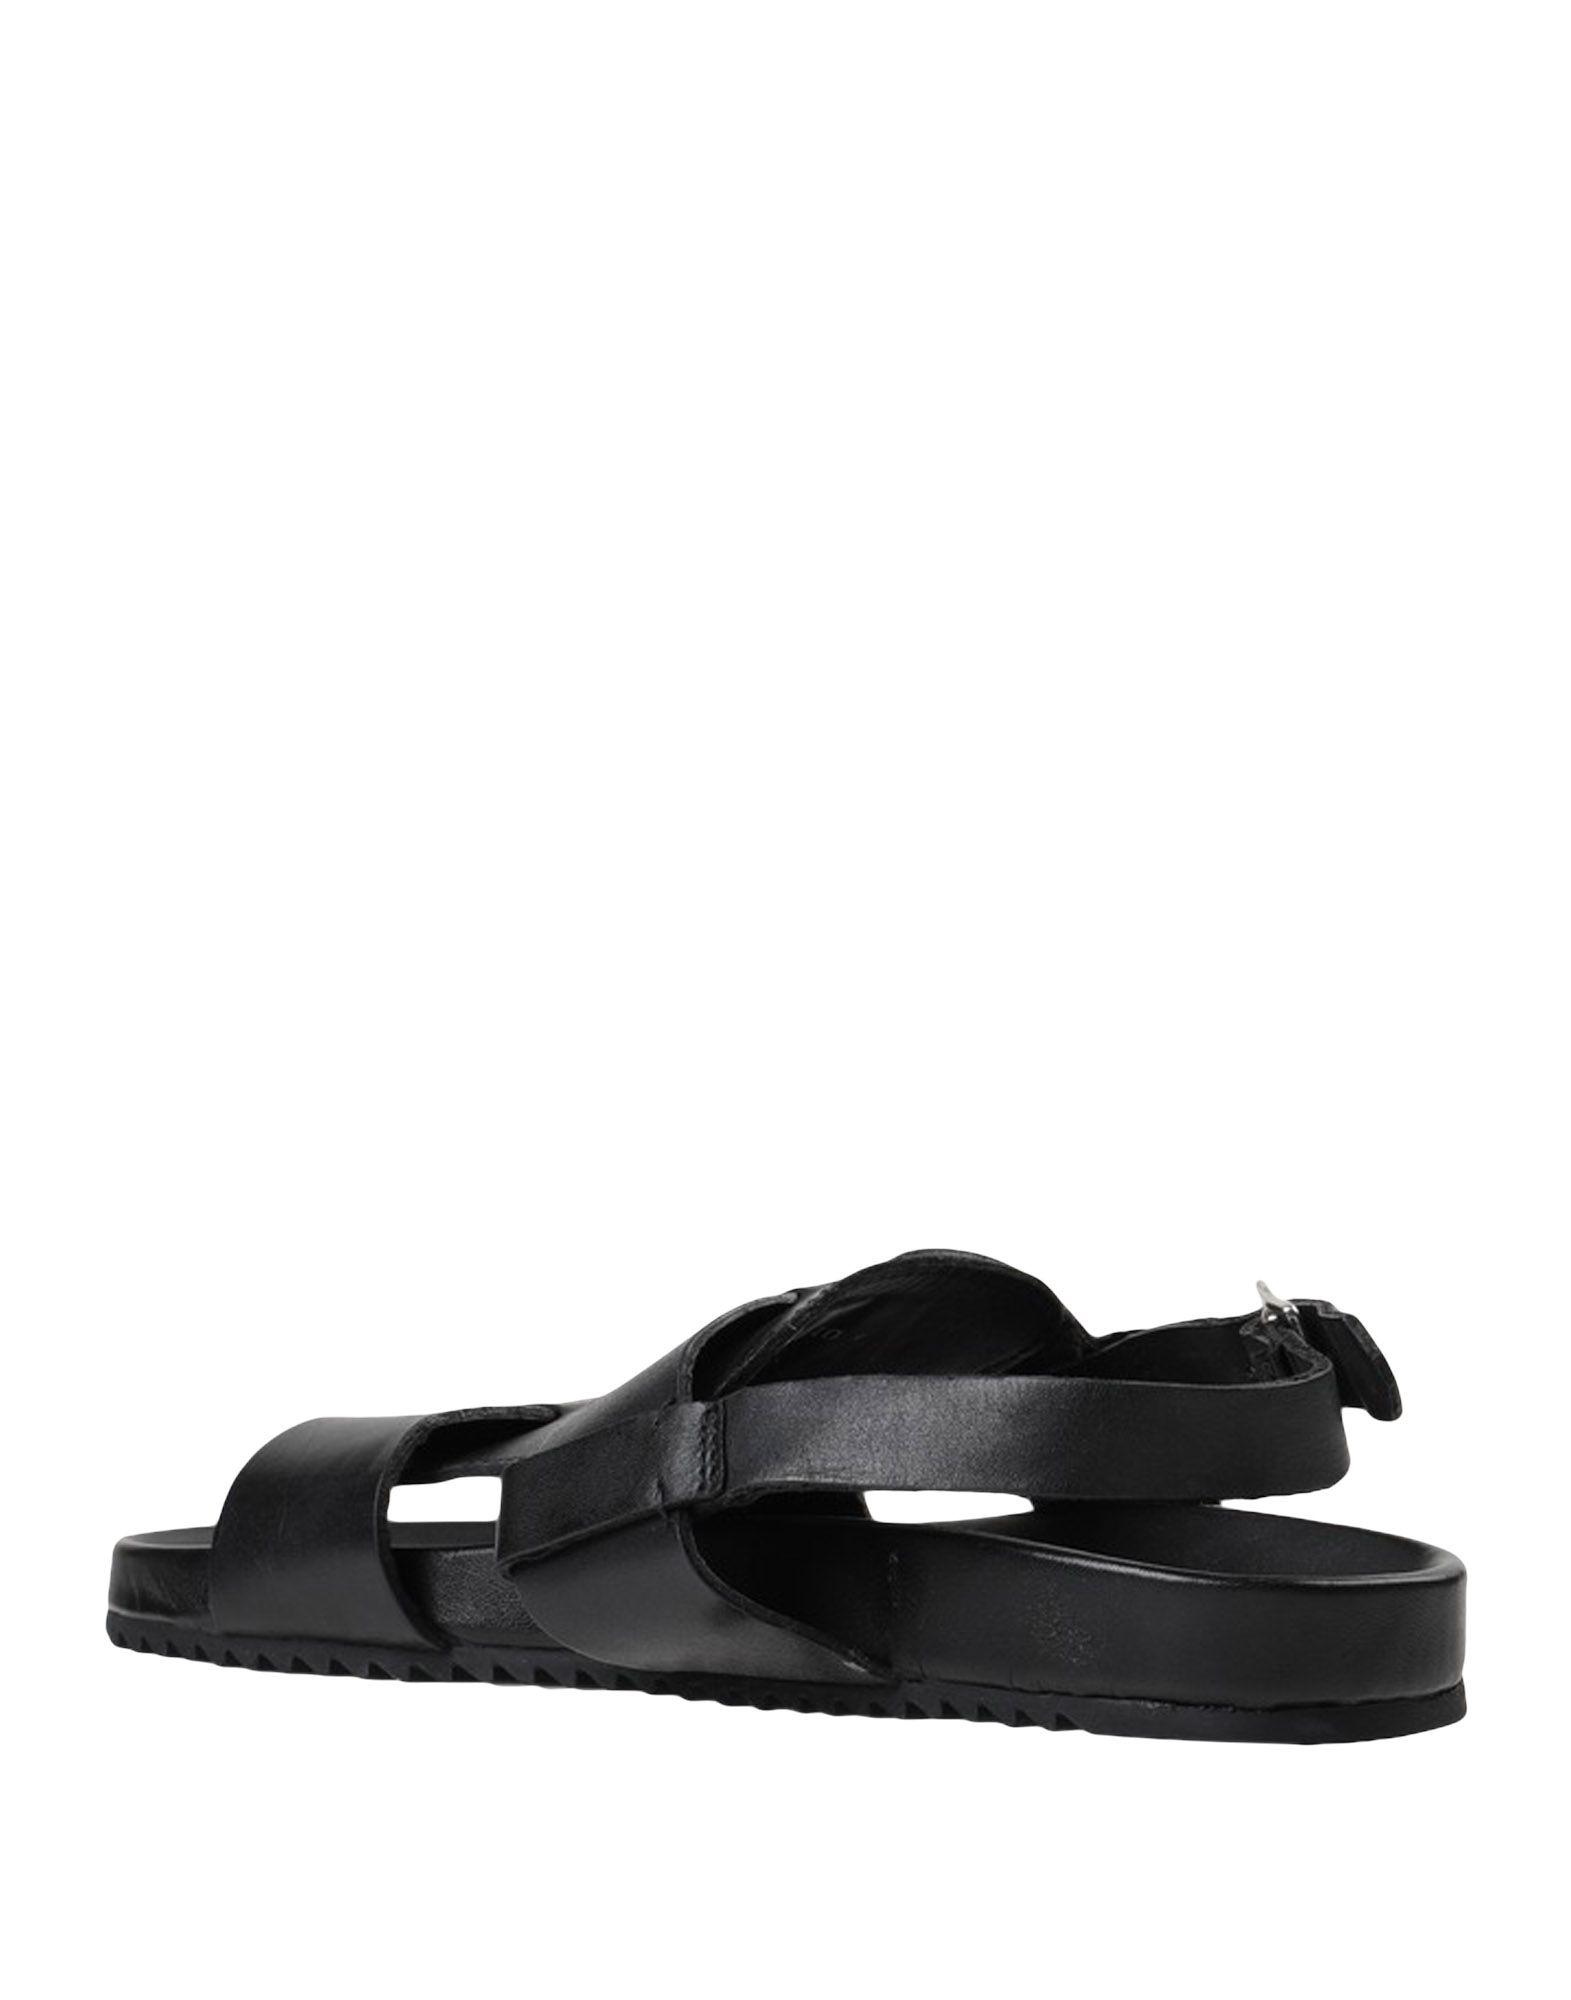 aa3a0fa42d59 Lyst - Grenson Sandals in Black for Men